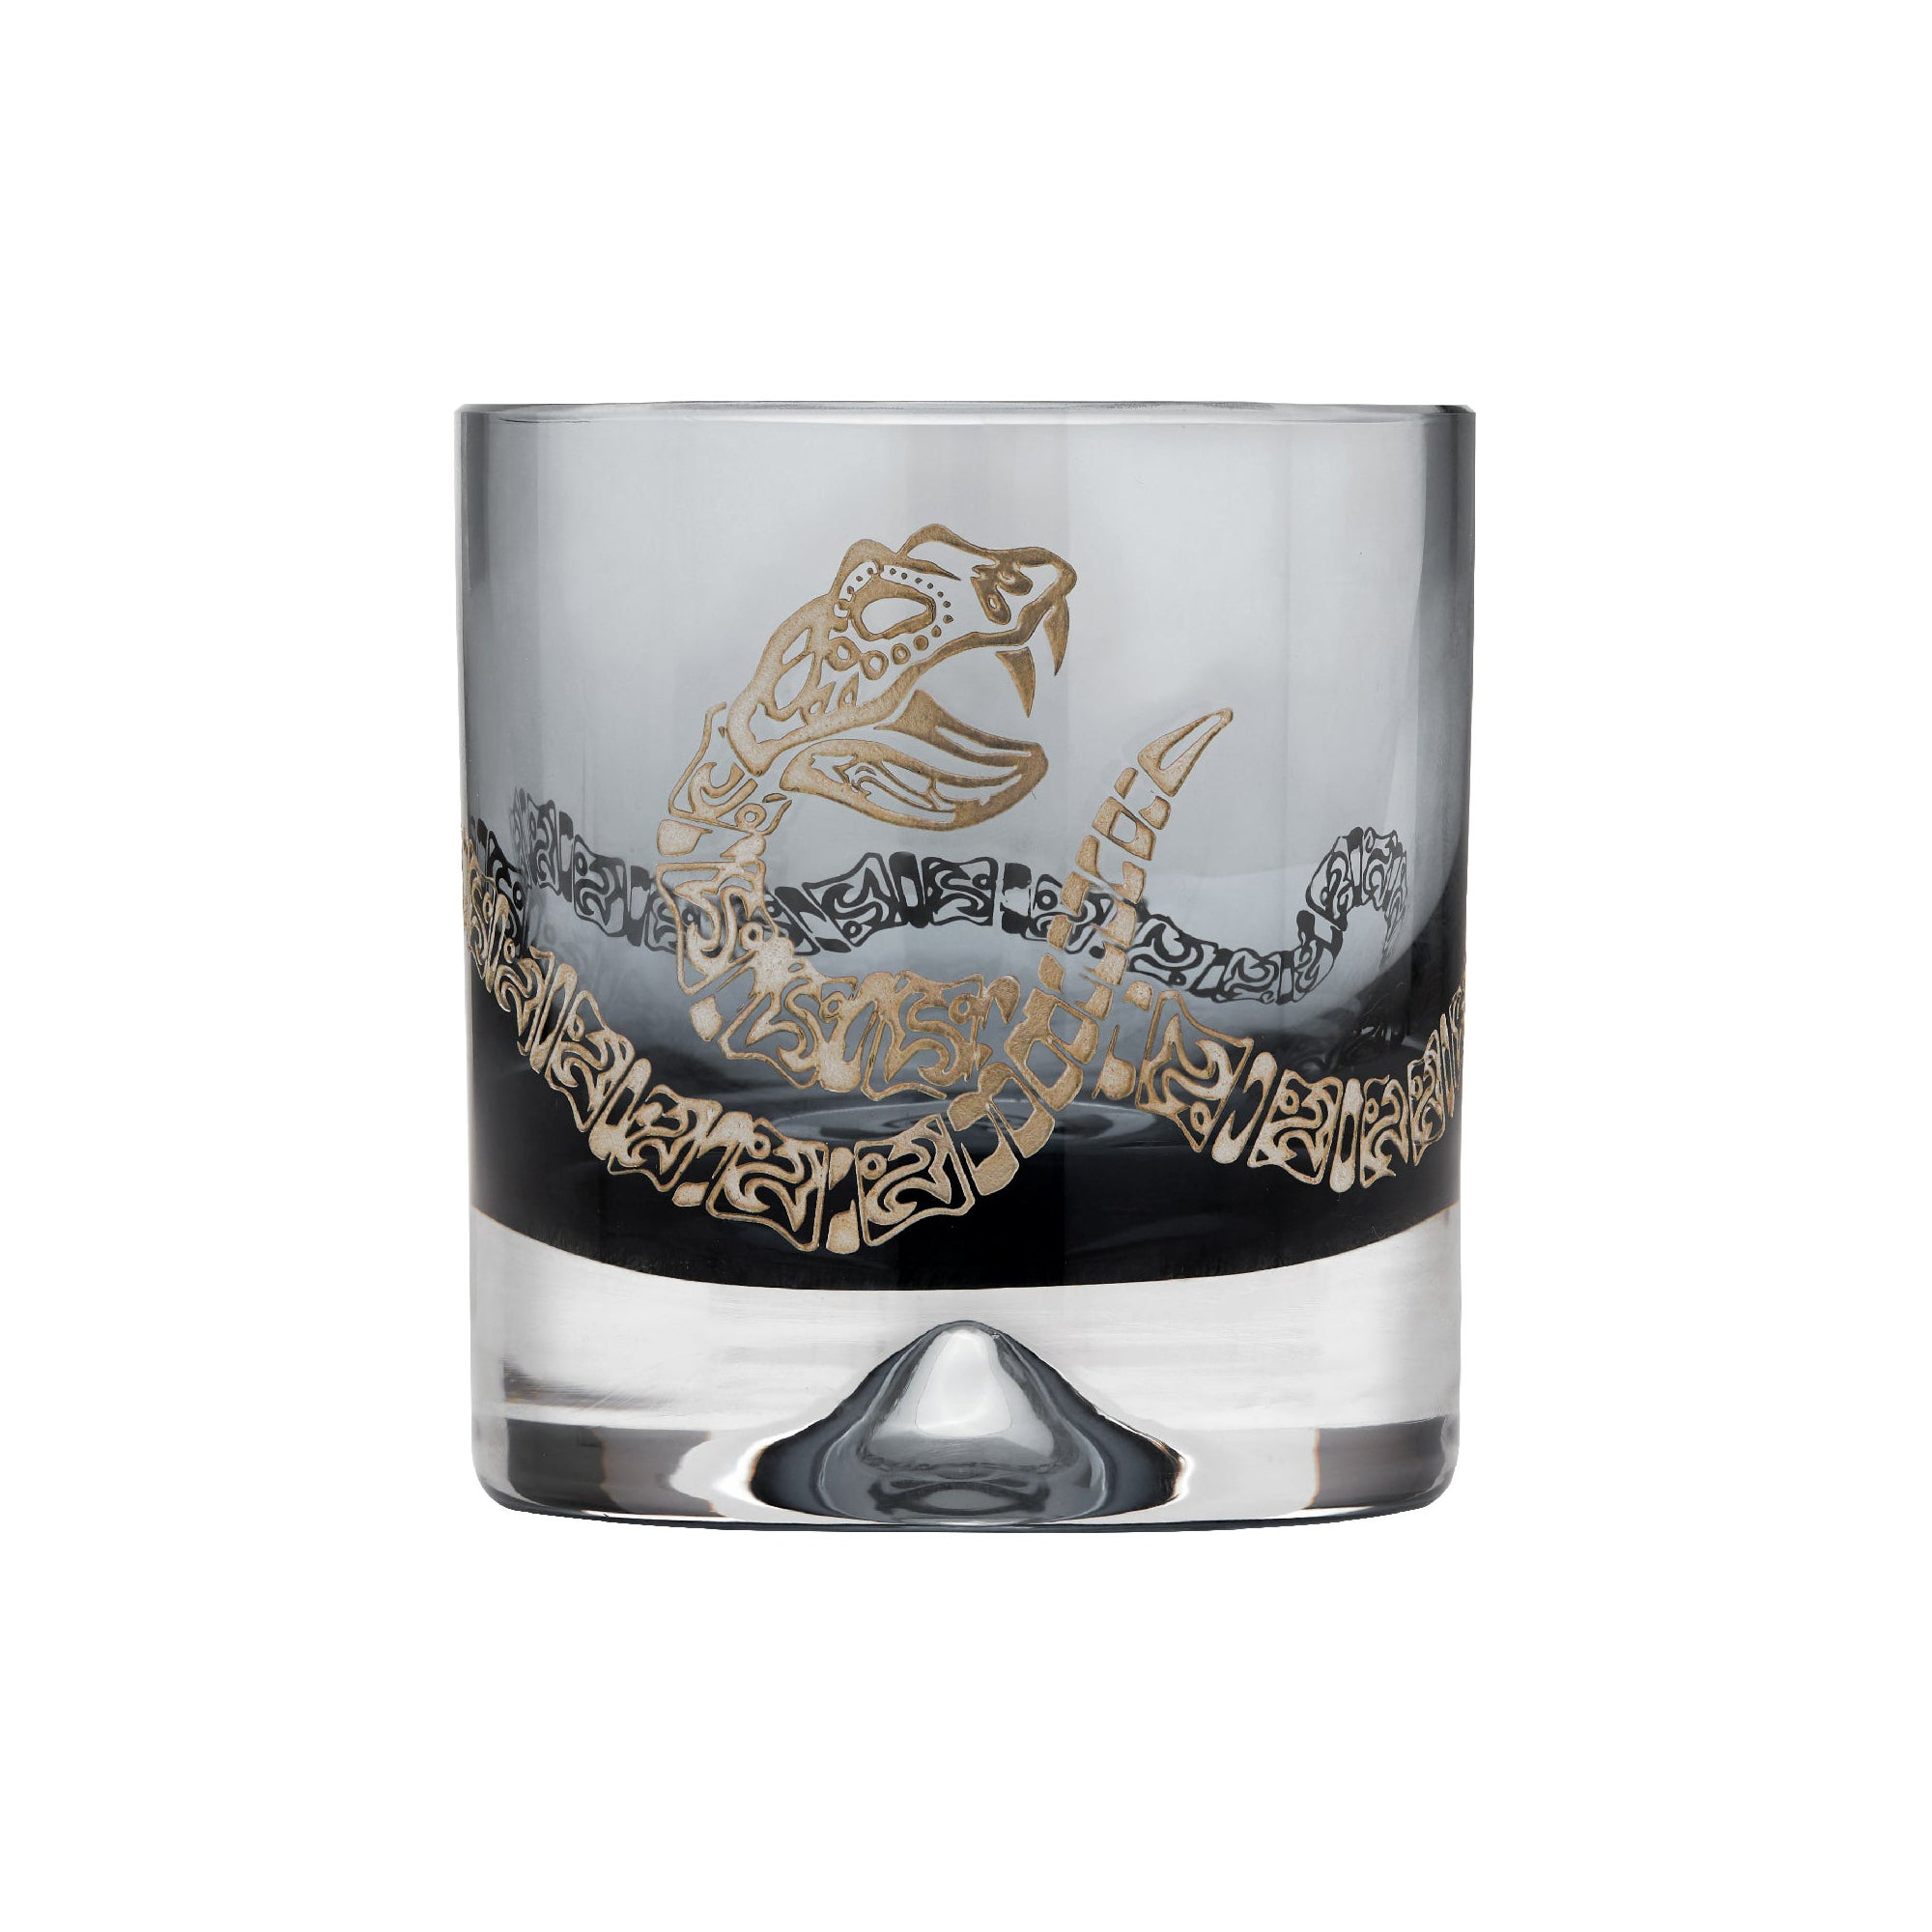 Stephen Webster Tequila Lore Rattlesnake Engraved Smoke Tumbler - Set of 2